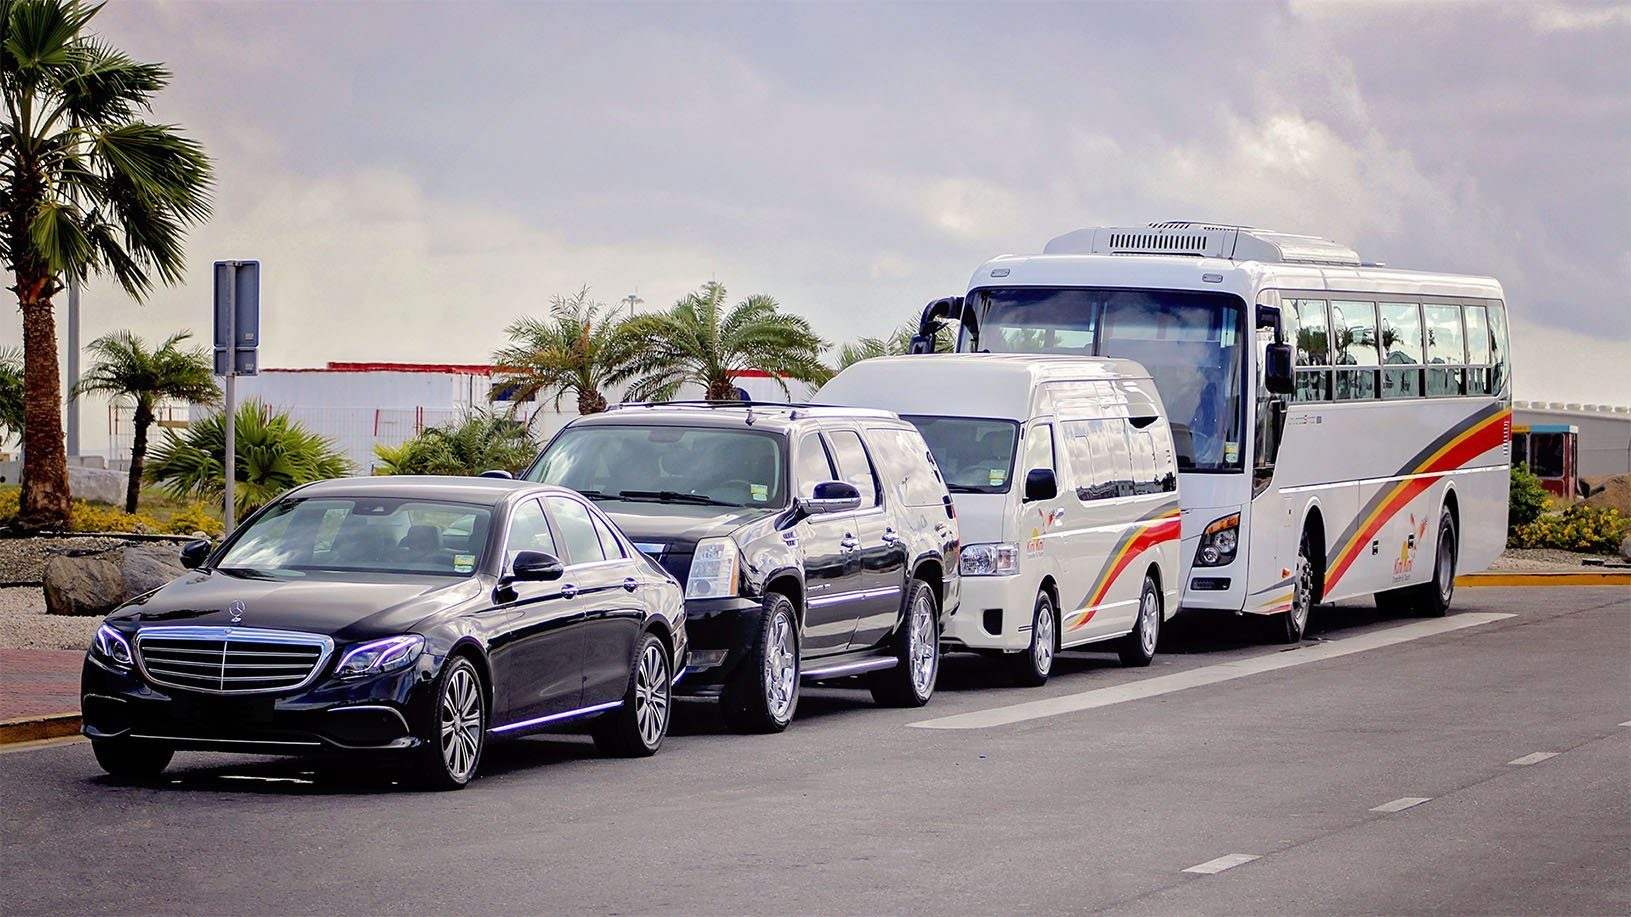 Aruba Airport Transfer Services